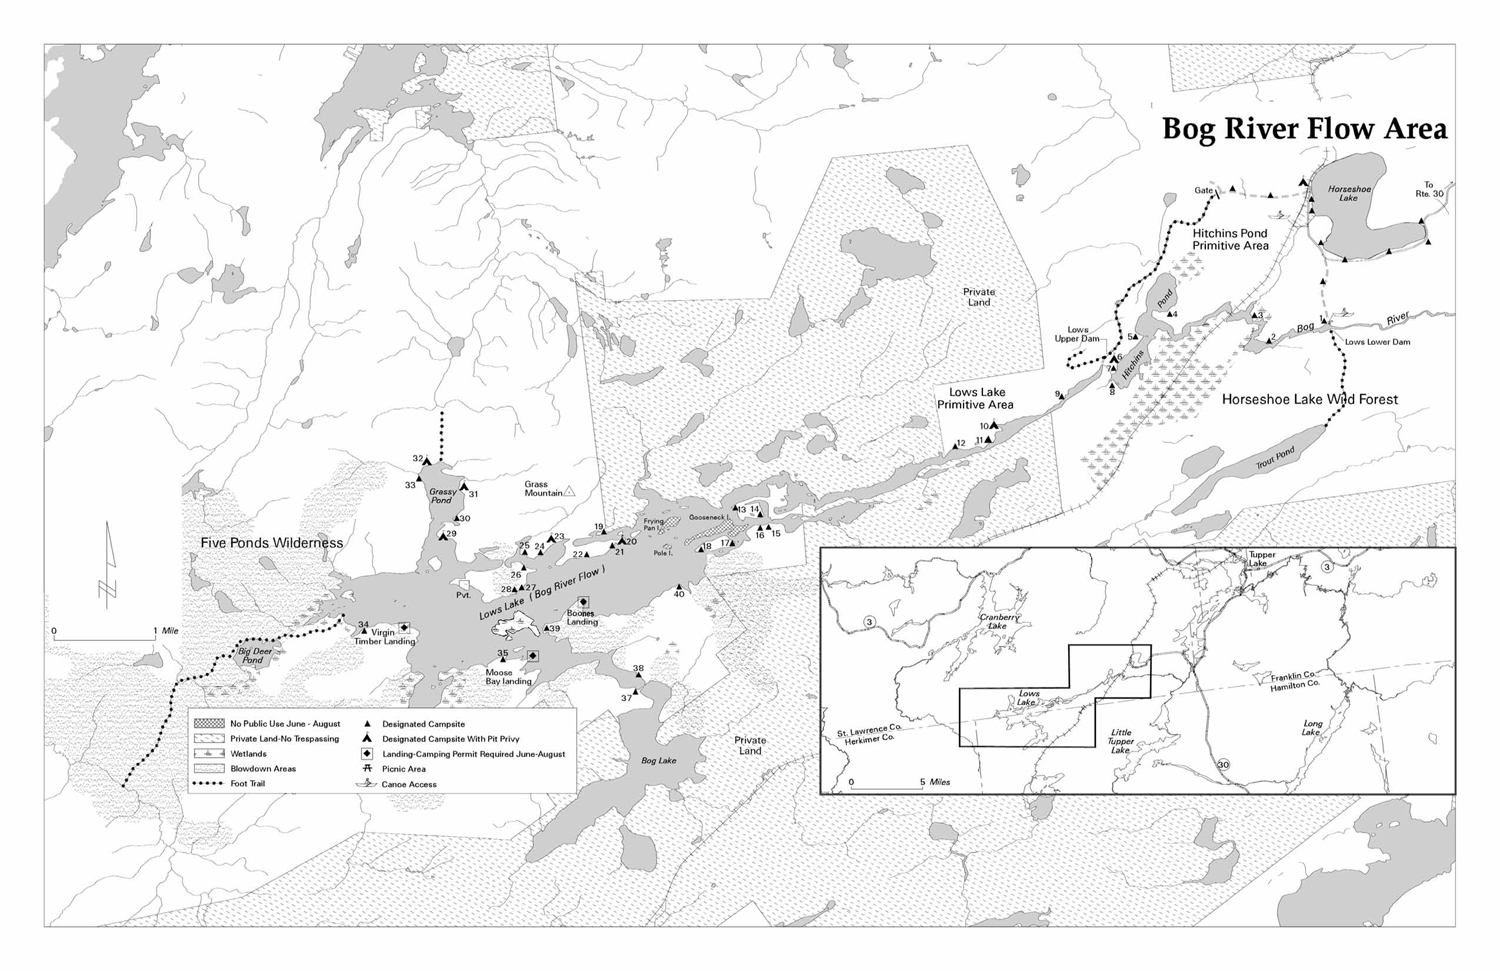 Map showing campsites along Bog River Flow (Lows Lake)